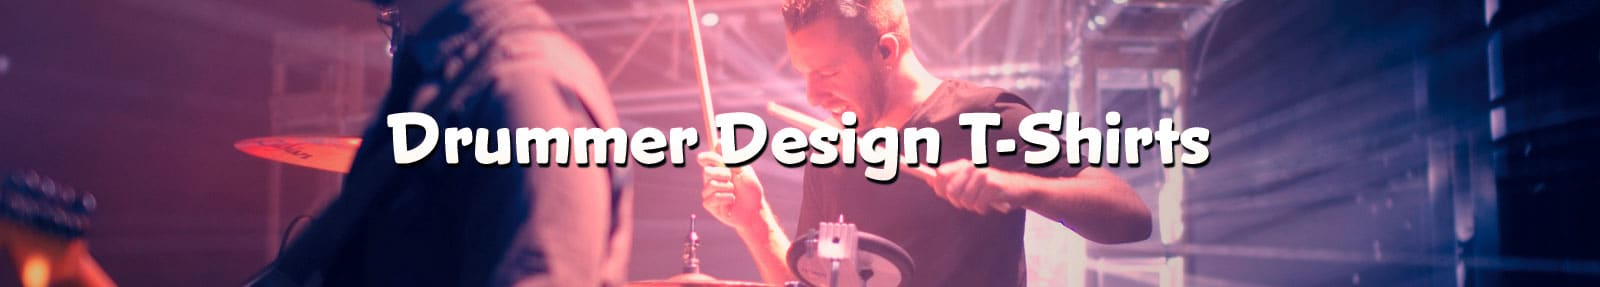 Drummer Design T-Shirts